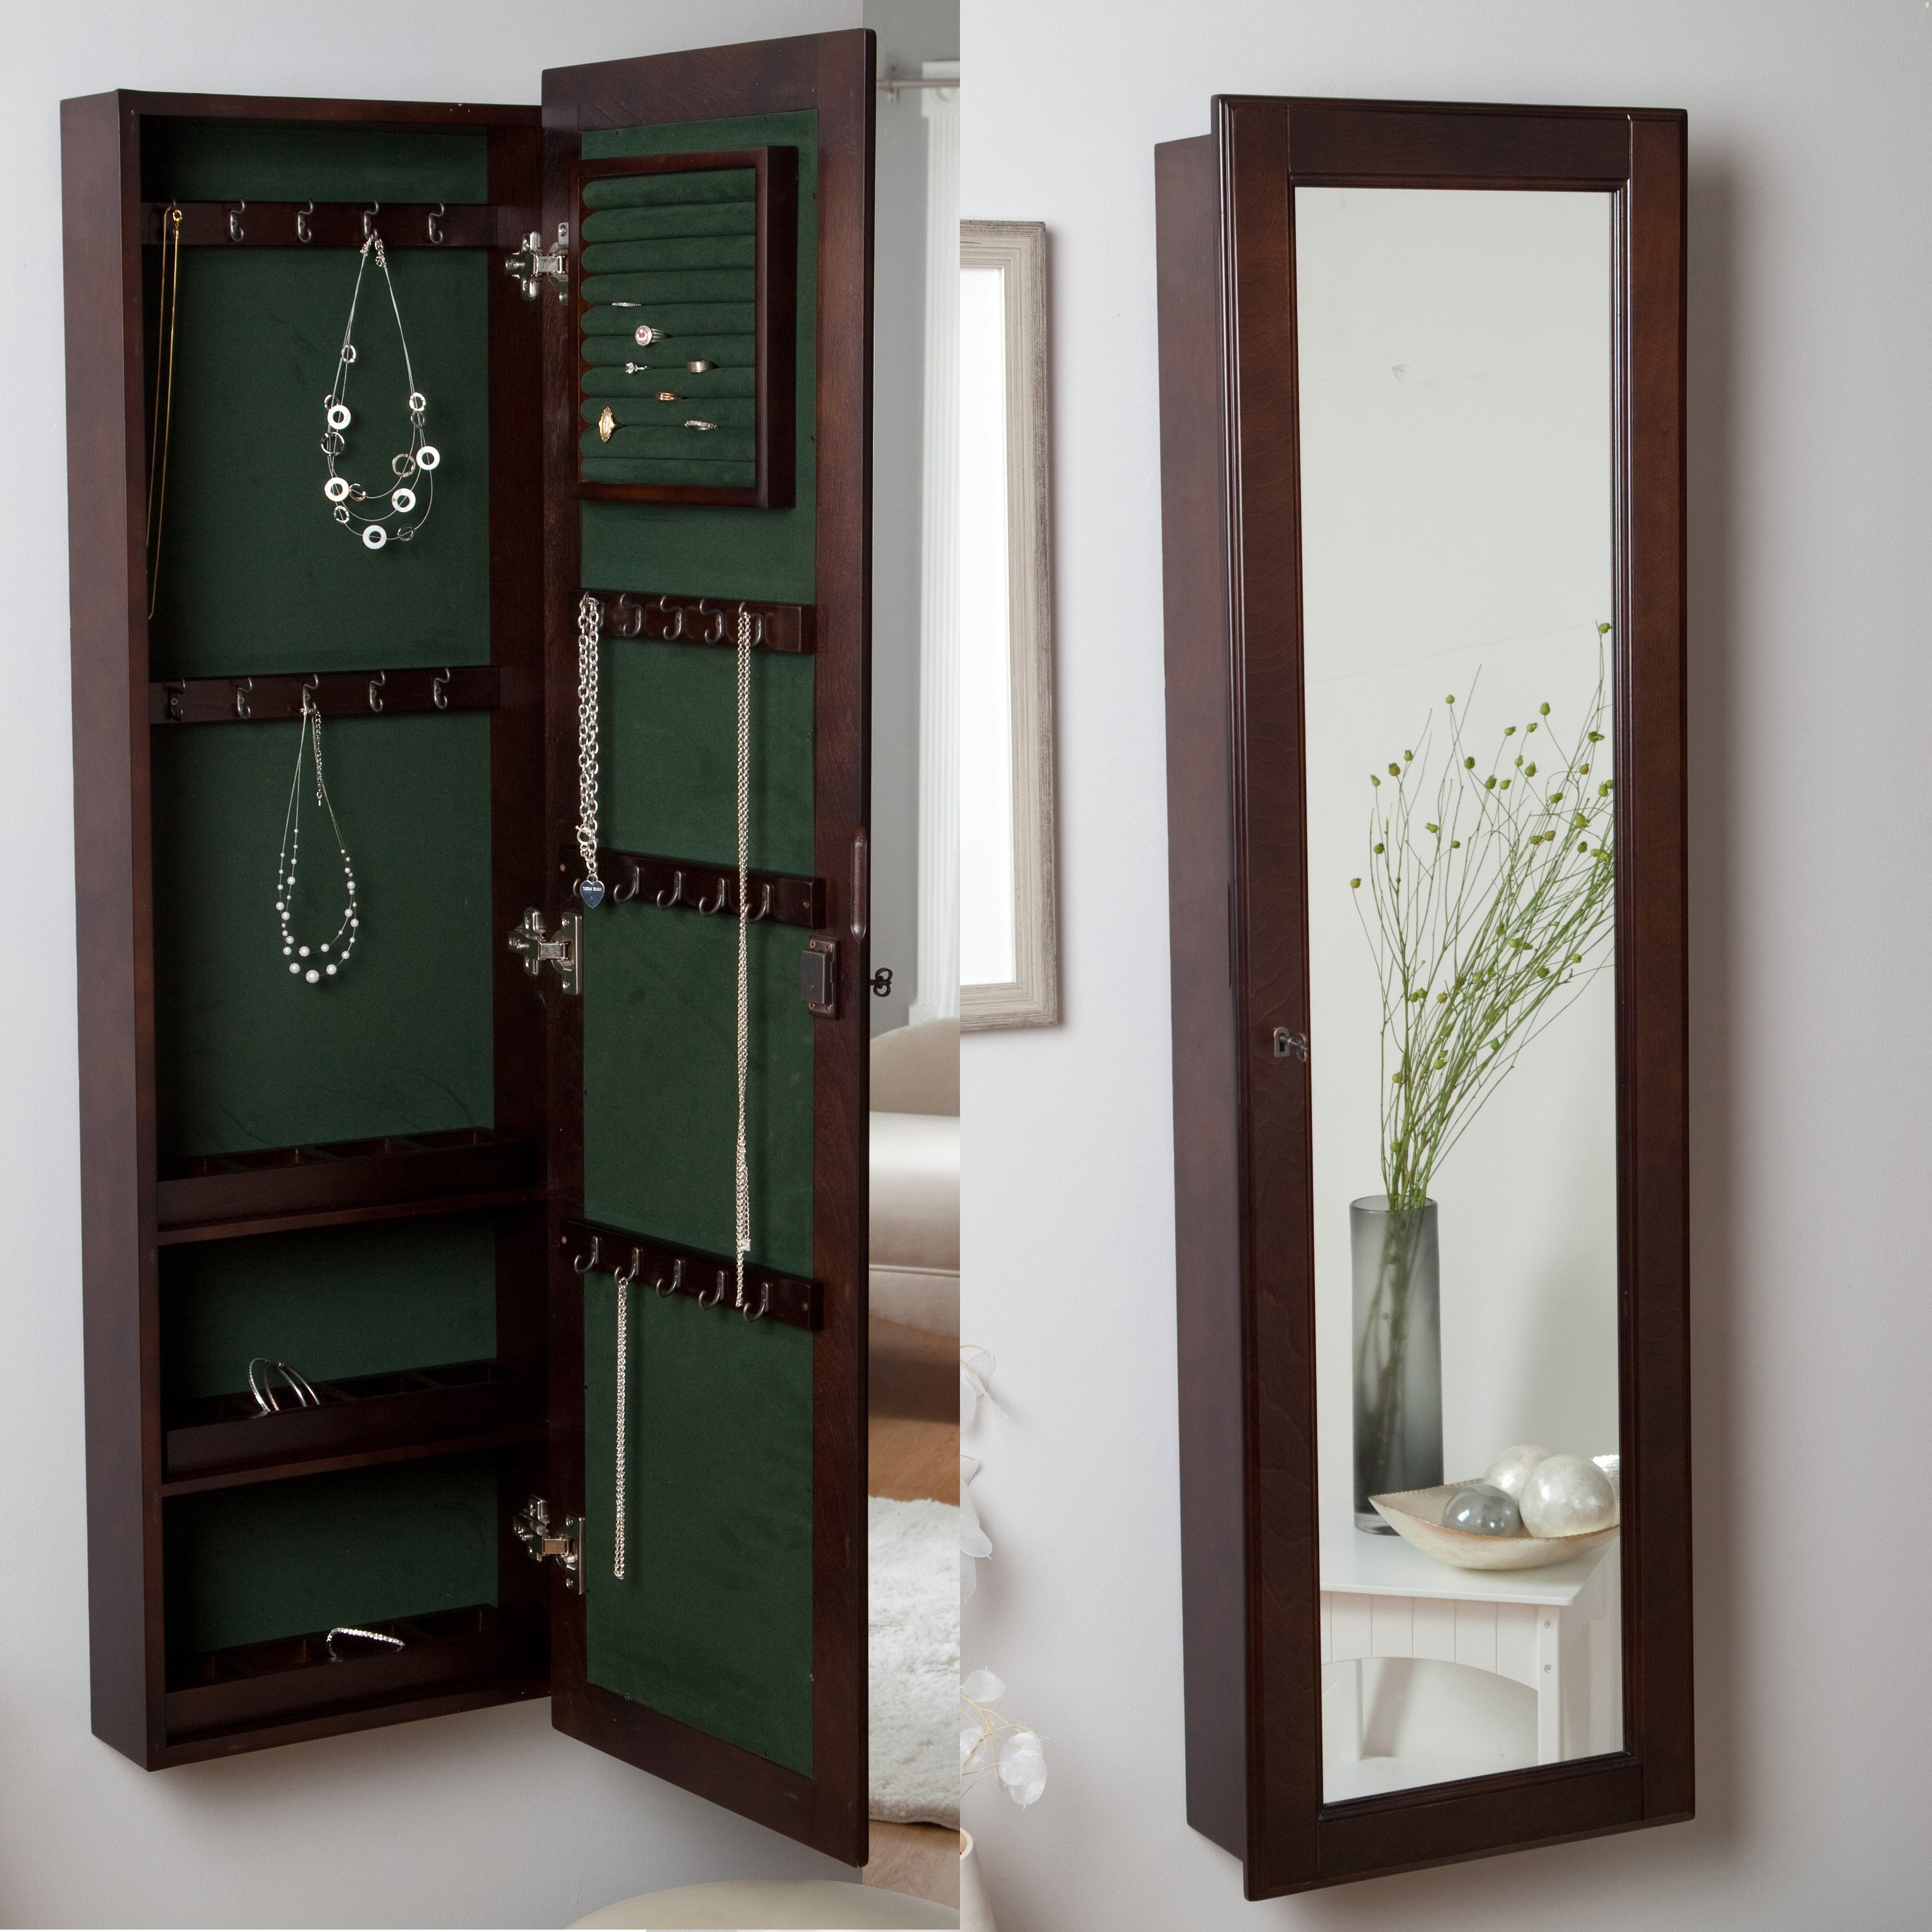 Jewelry Wall Mirrors Intended For Fashionable Wall Mounted Locking Wooden Jewelry Armoire – 14.5W X 50H In (View 4 of 20)